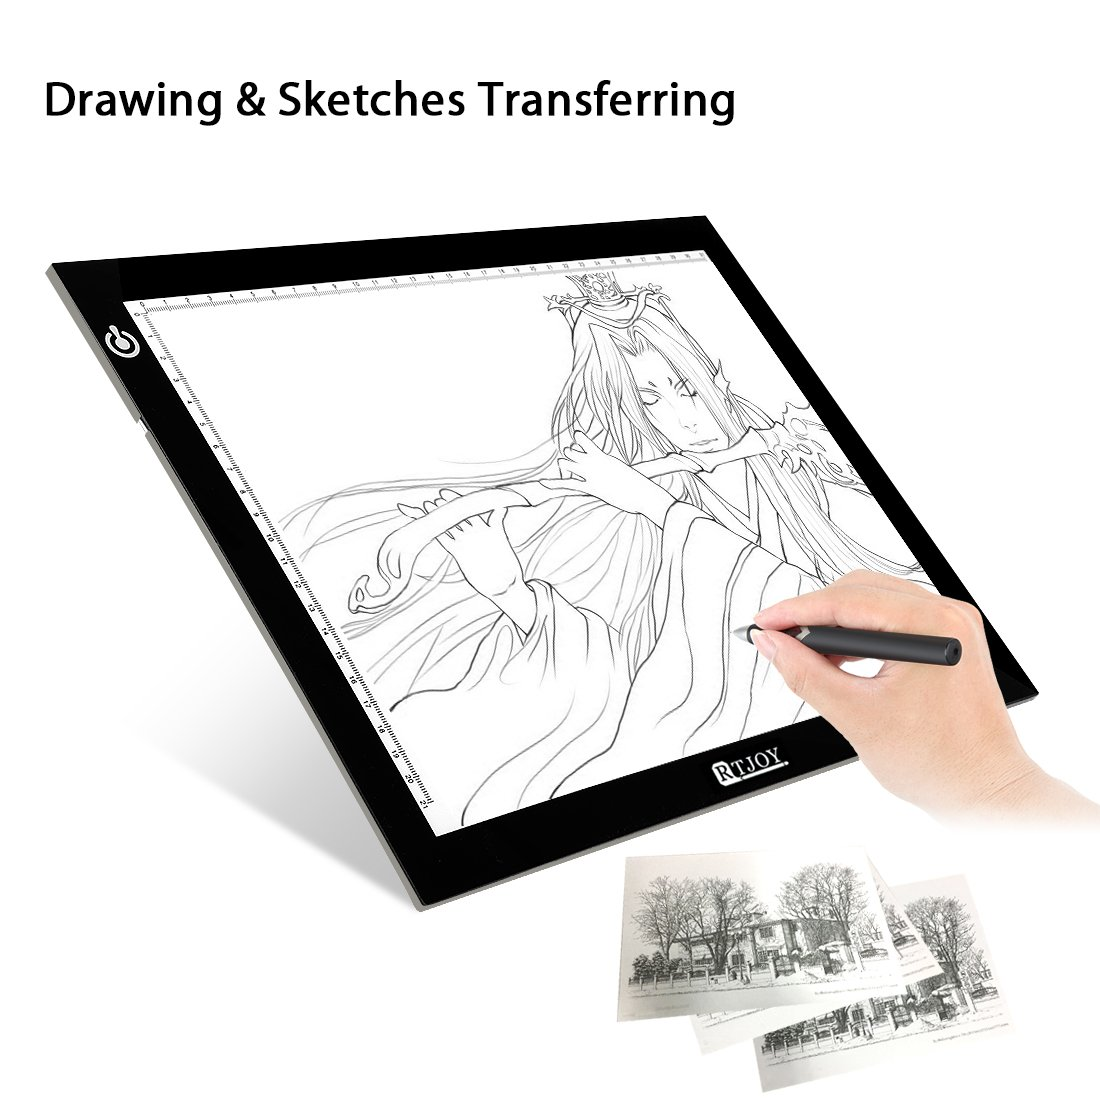 12.2x8.27 Inches Litup A4 LED Light Box Tracer Ultra-Thin USB Powered Adjustable LED Artcraft Tracing Light Pad for Artists Drawing Sketching Animation Designing Stencilling X-ray Viewing